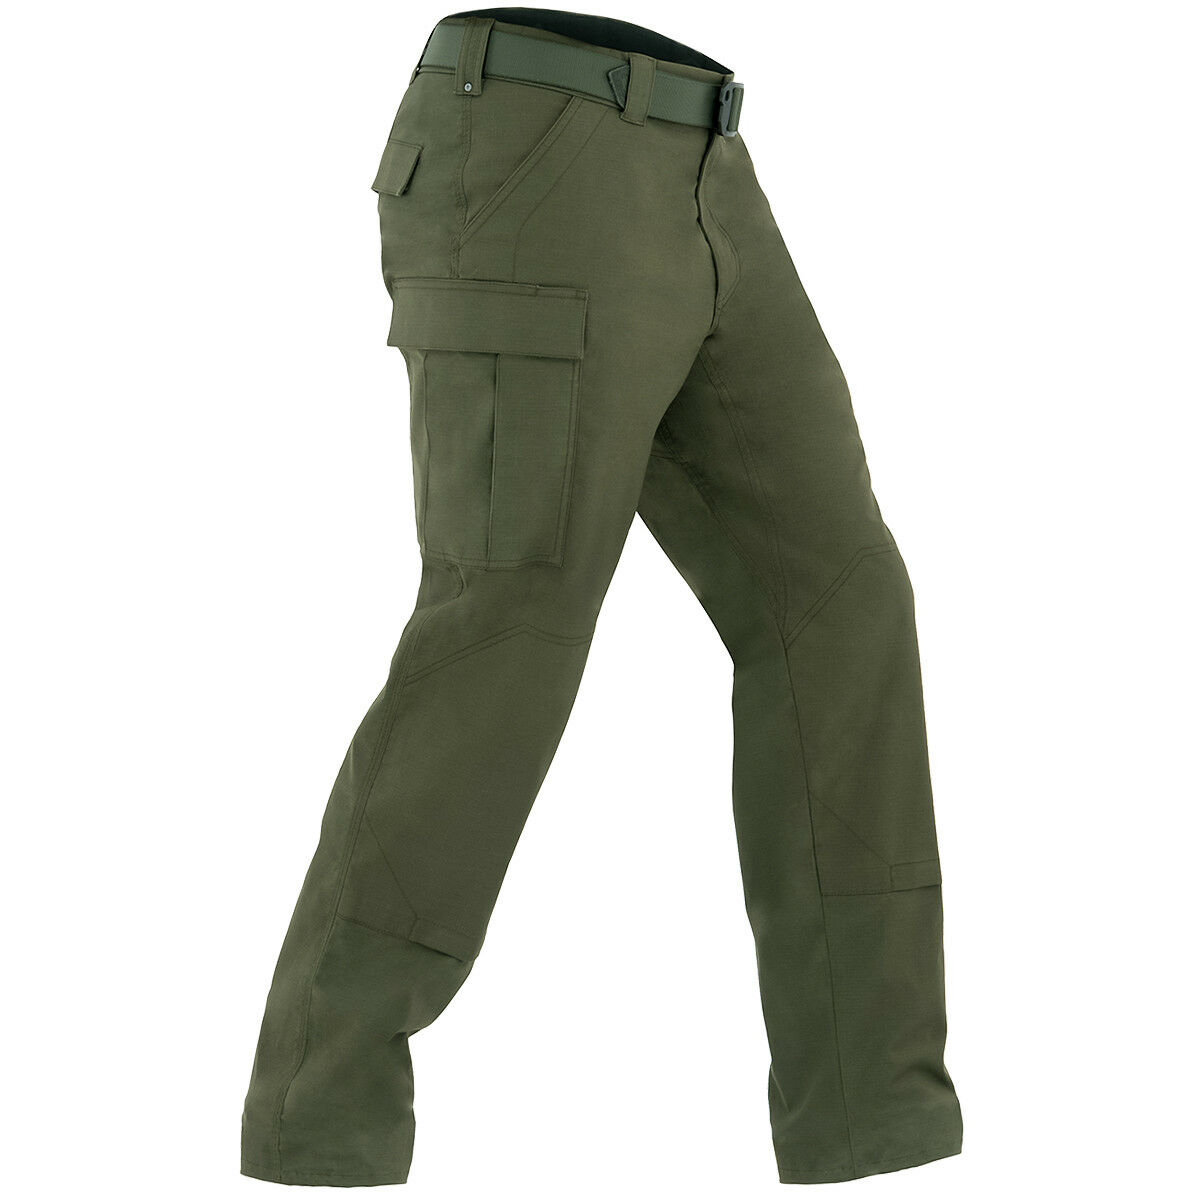 First Tactical Men's Tactix BDU Pants Hunting Patrol Ripstop Trousers OD Green